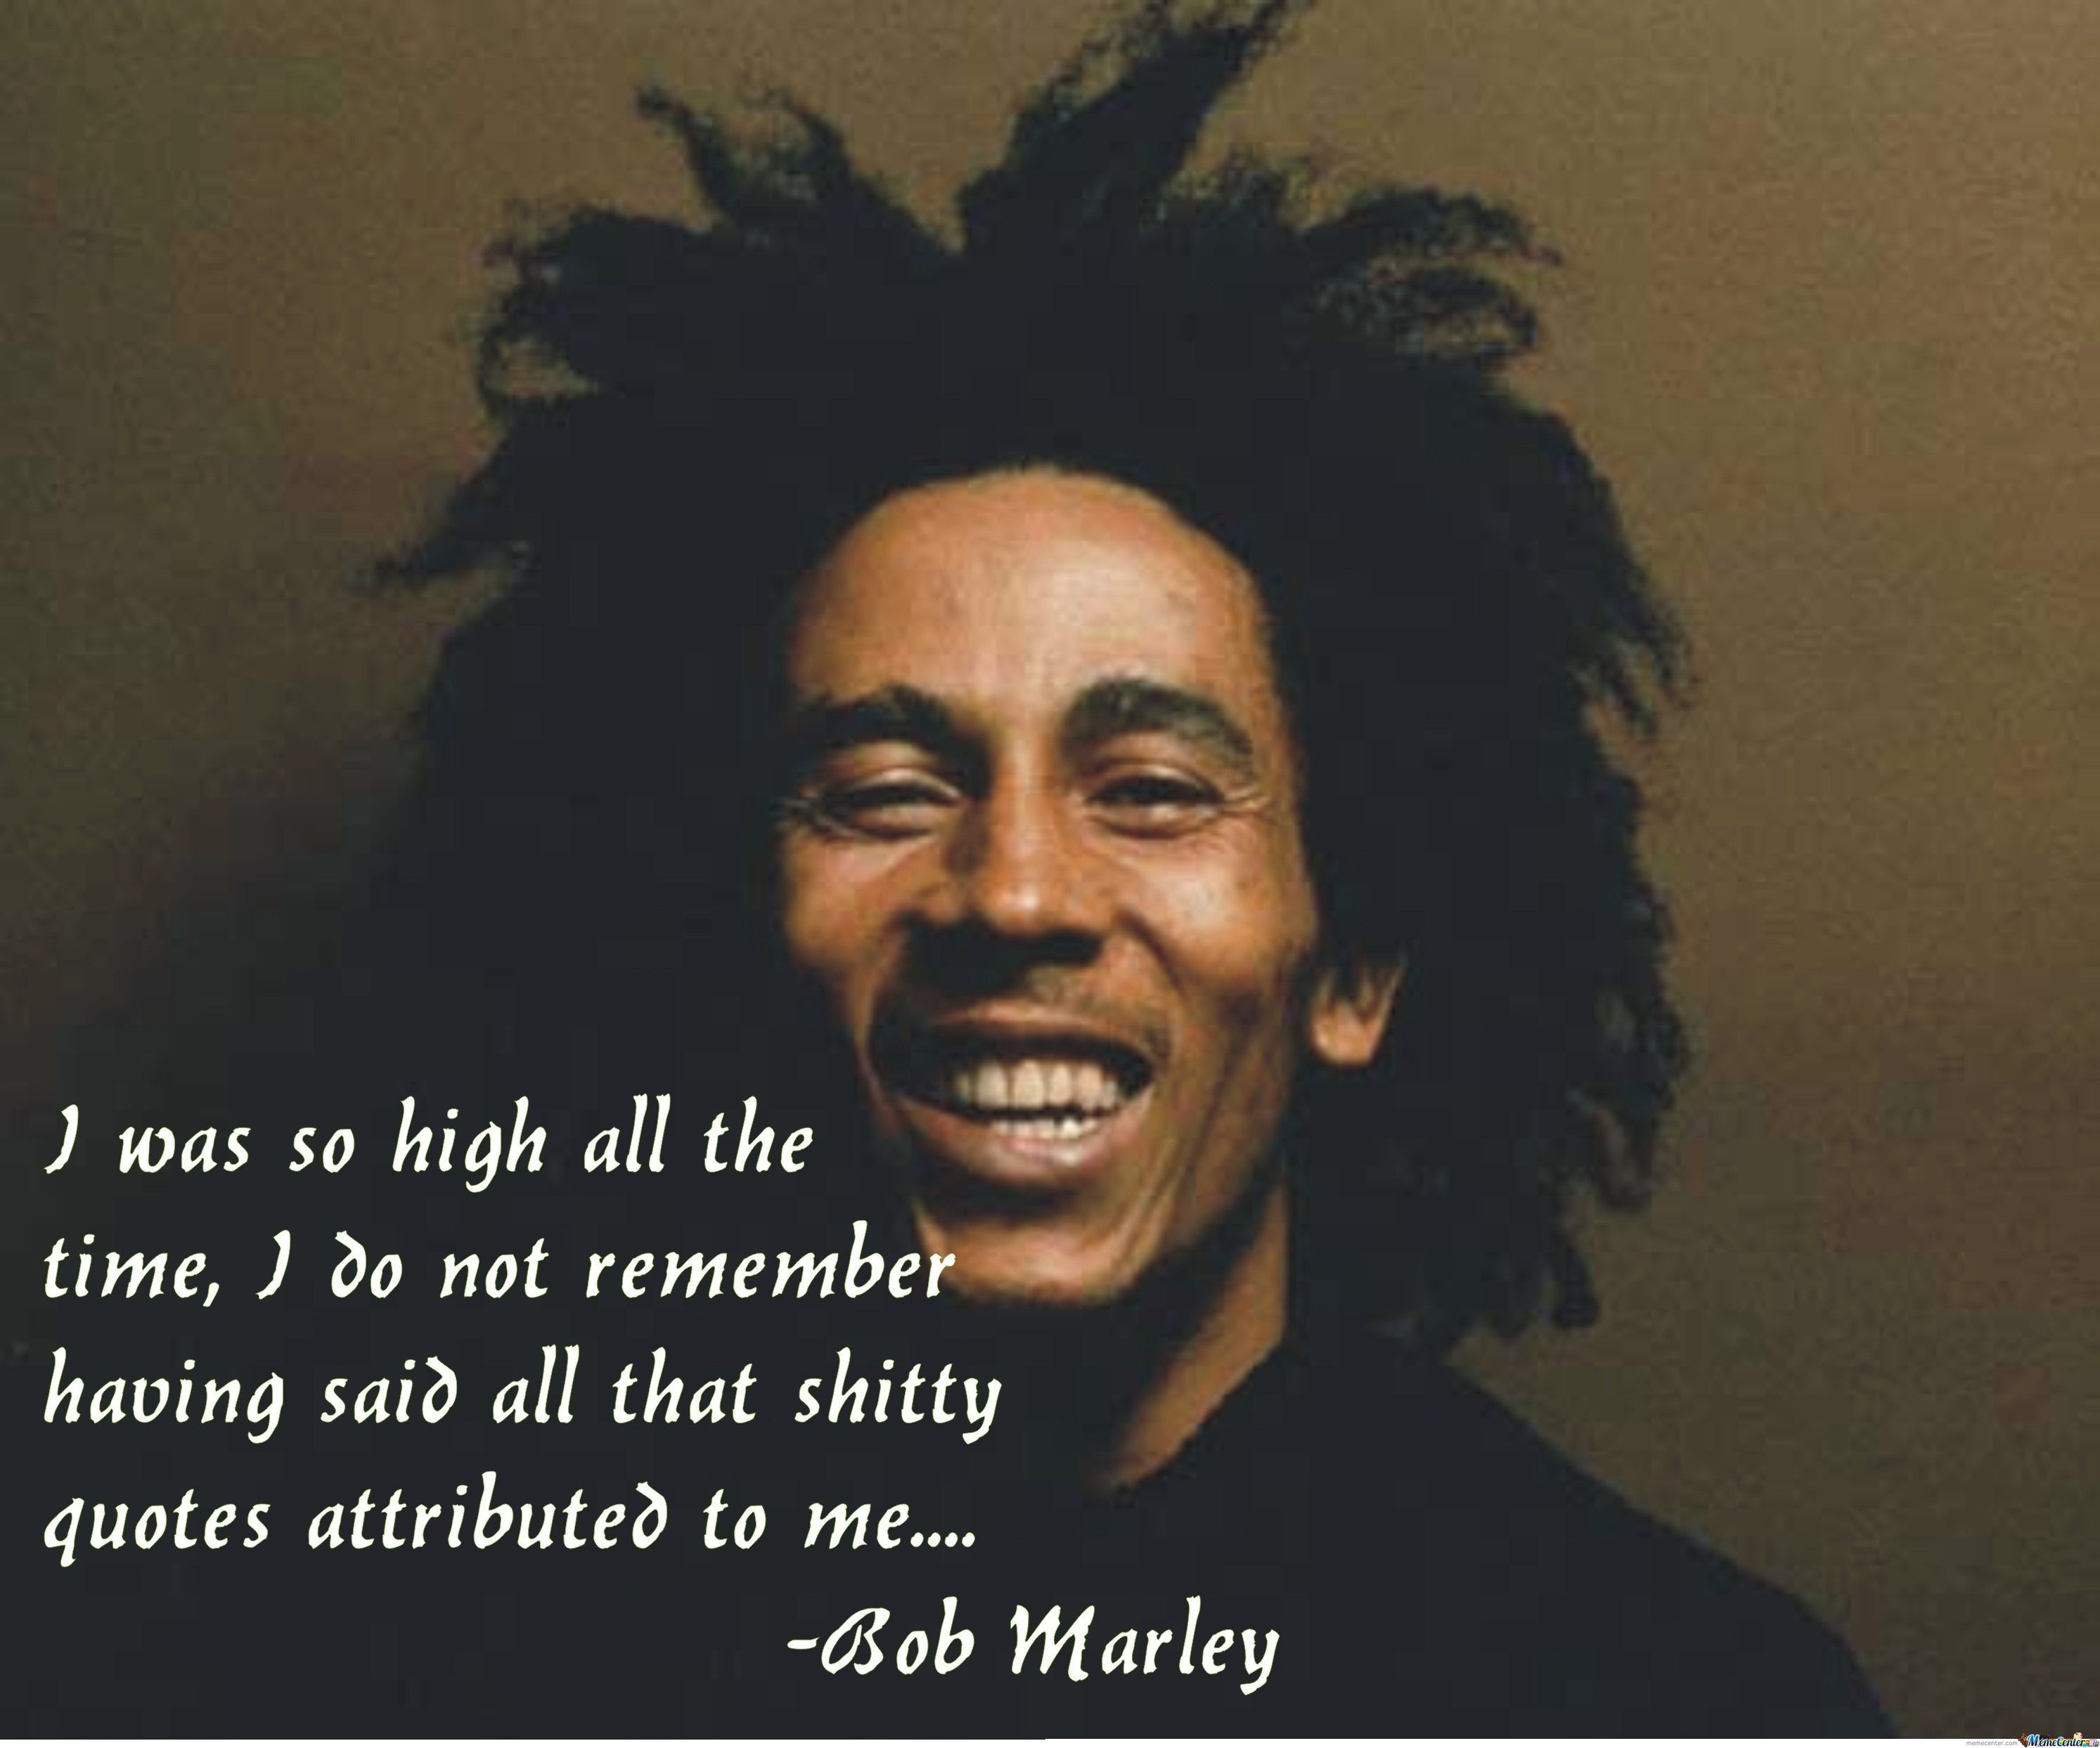 Funny Getting High Quotes: Bob Marley Birthday Quotes. QuotesGram